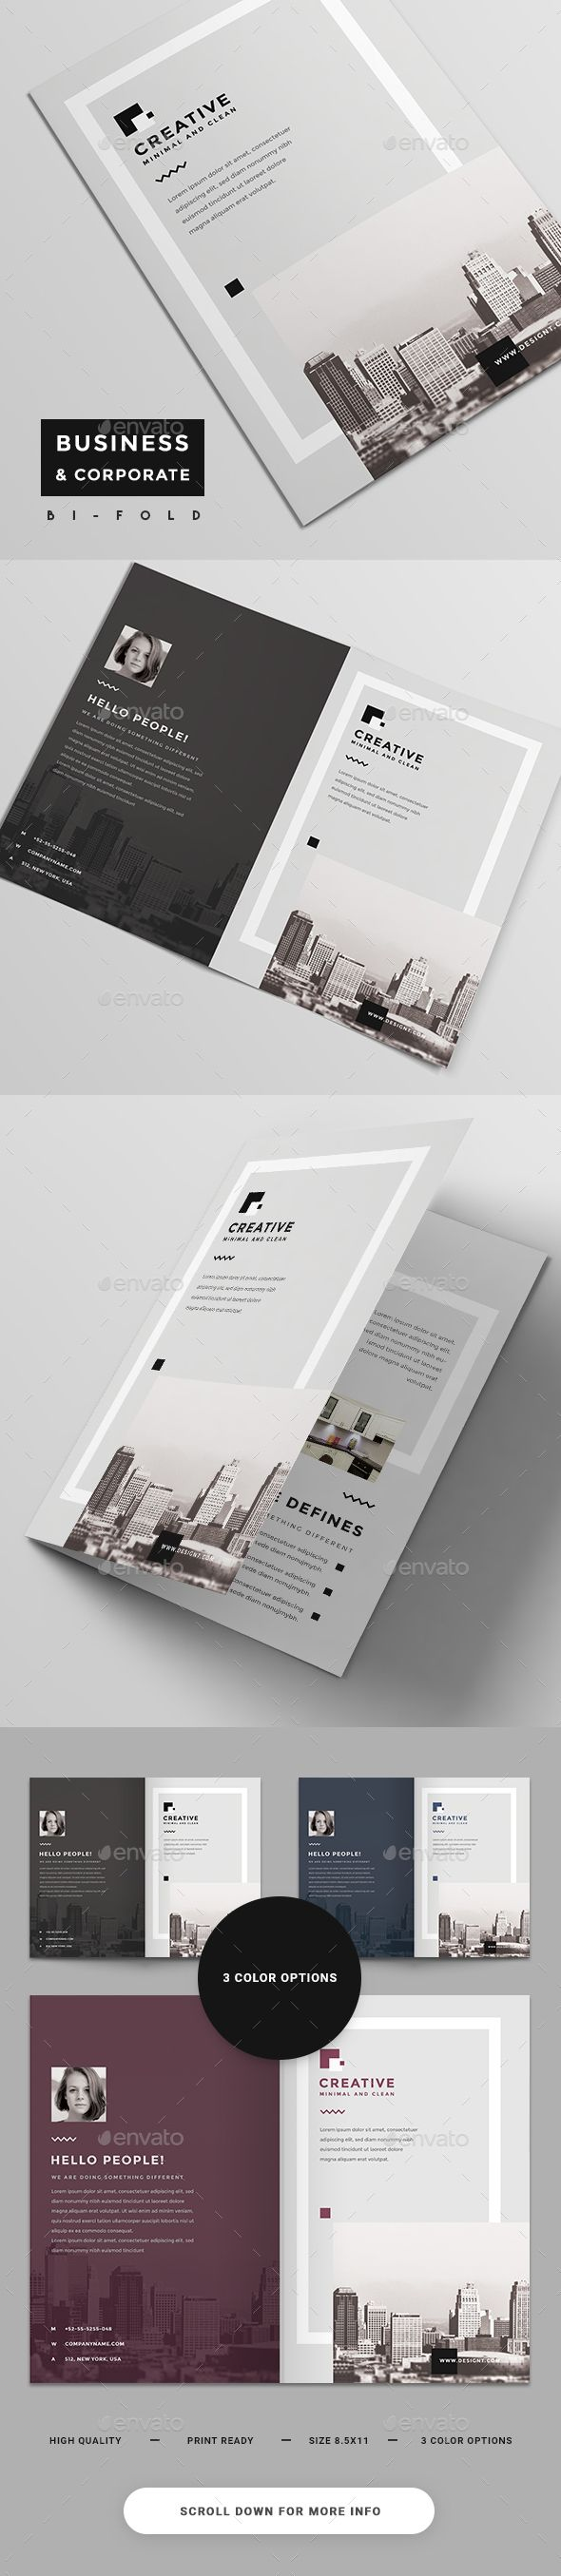 Corporate Bi-Fold Brochure - #Brochures Print #Templates Download here: https://graphicriver.net/item/corporate-bifold-brochure/19388742?ref=alena994